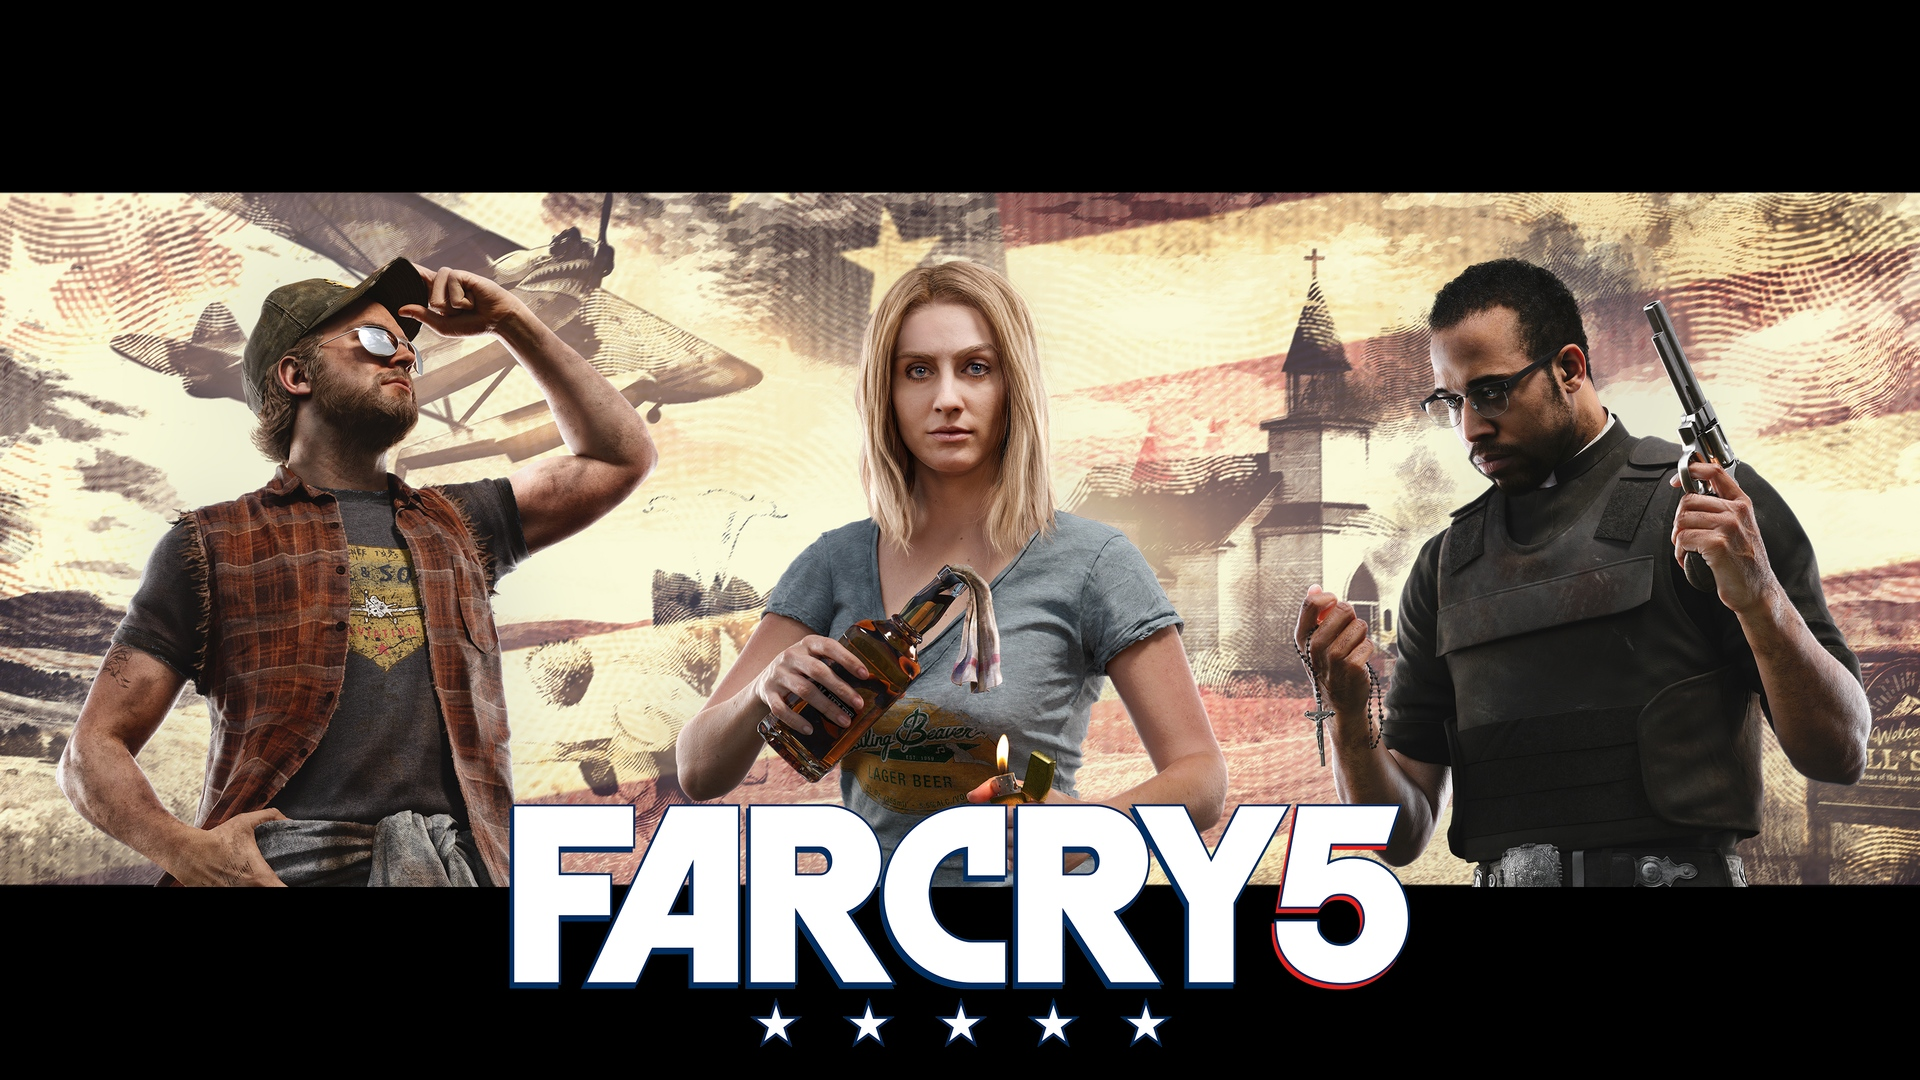 far cry 5 game characters nick mary jerome 2106 - فروش بازی Far Cry 5 Deluxe Edition پلی‌استیشن ۴